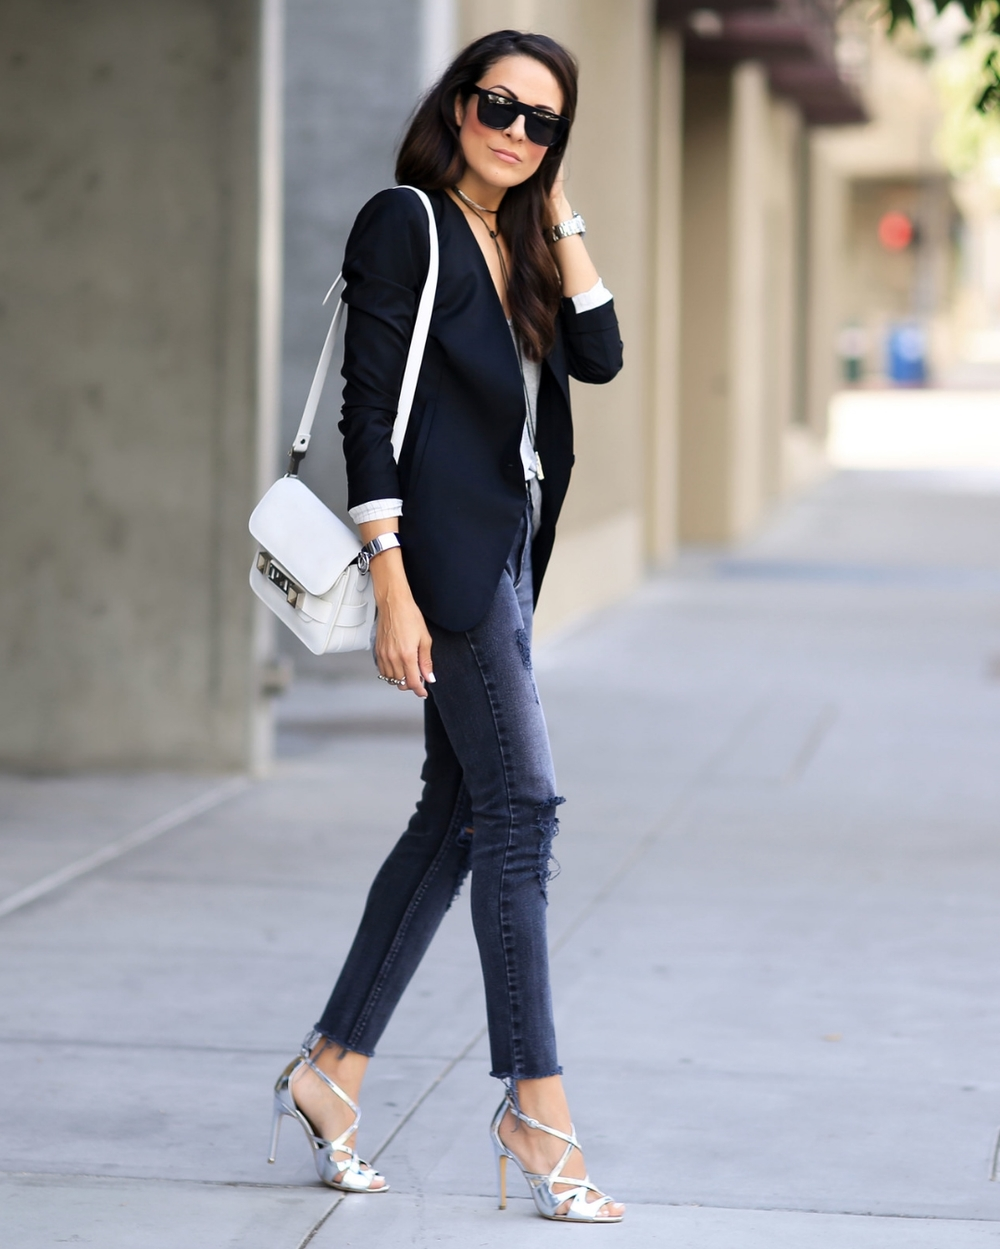 Res-Denim-Madewell-Fashion-BCBG-Proenza-Shouler-Streetstyle-Chloe-Nine-West-Lucys-Whims.jpg